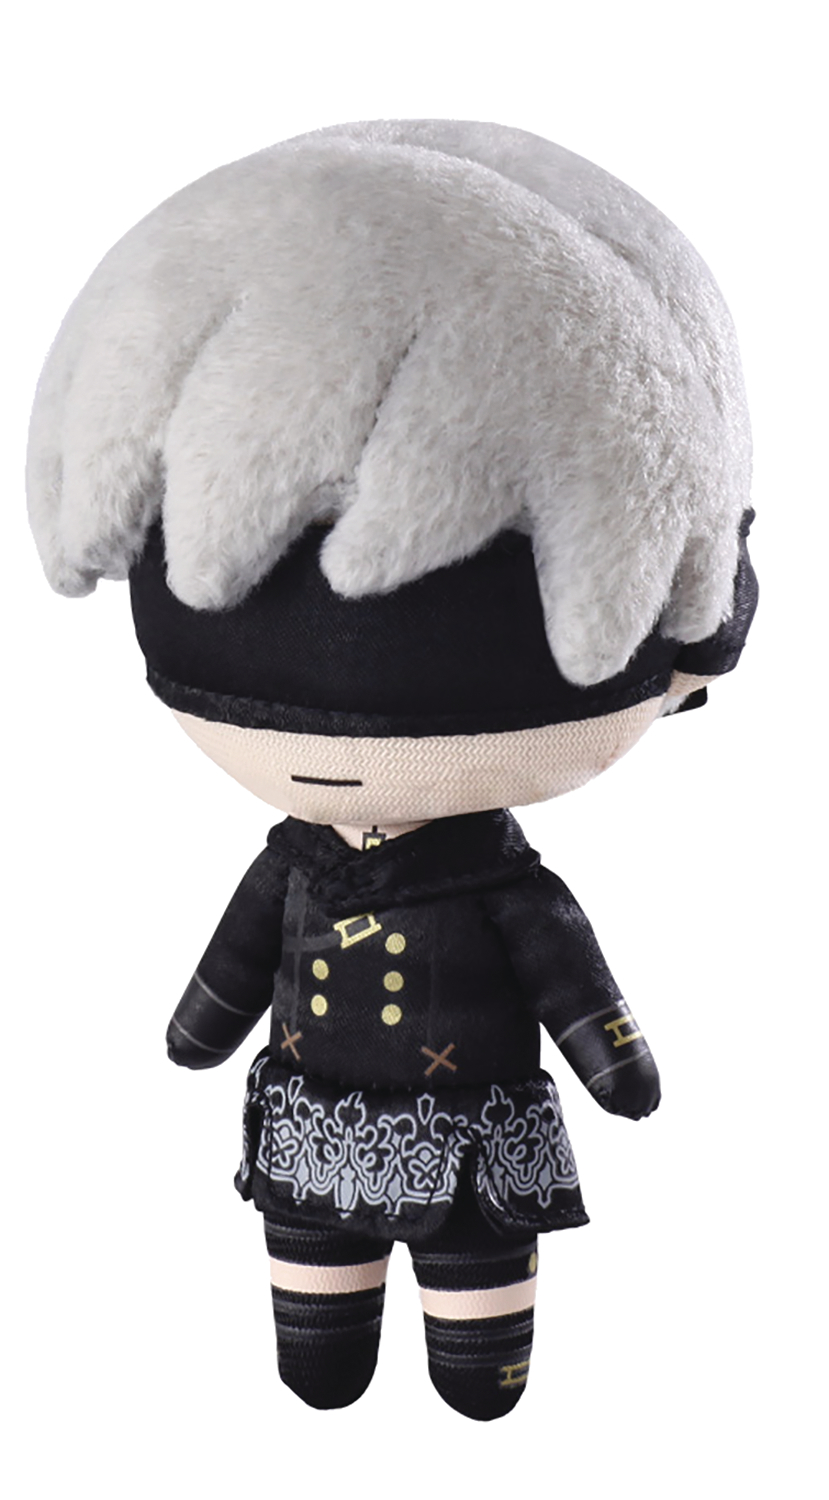 NIER AUTOMATA 9S MINI PLUSH